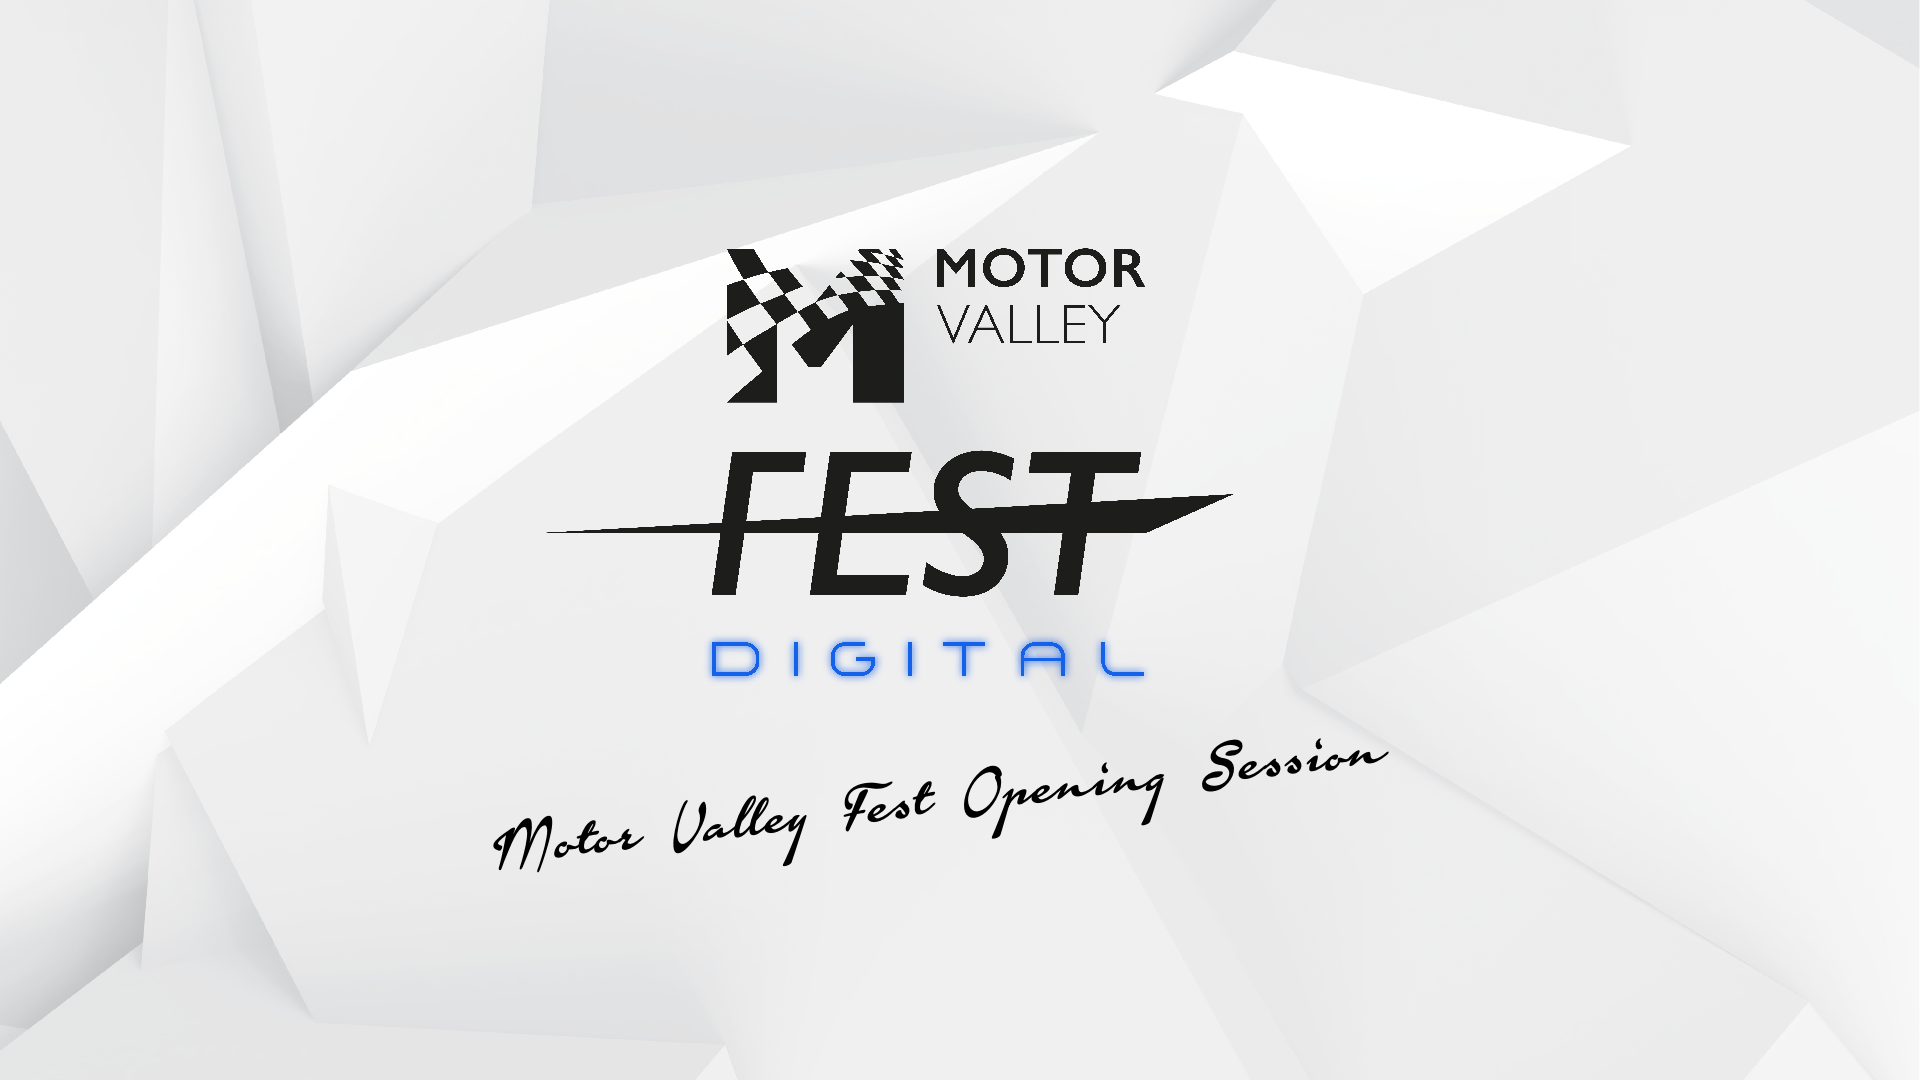 Motor Valley Fest Opening Session